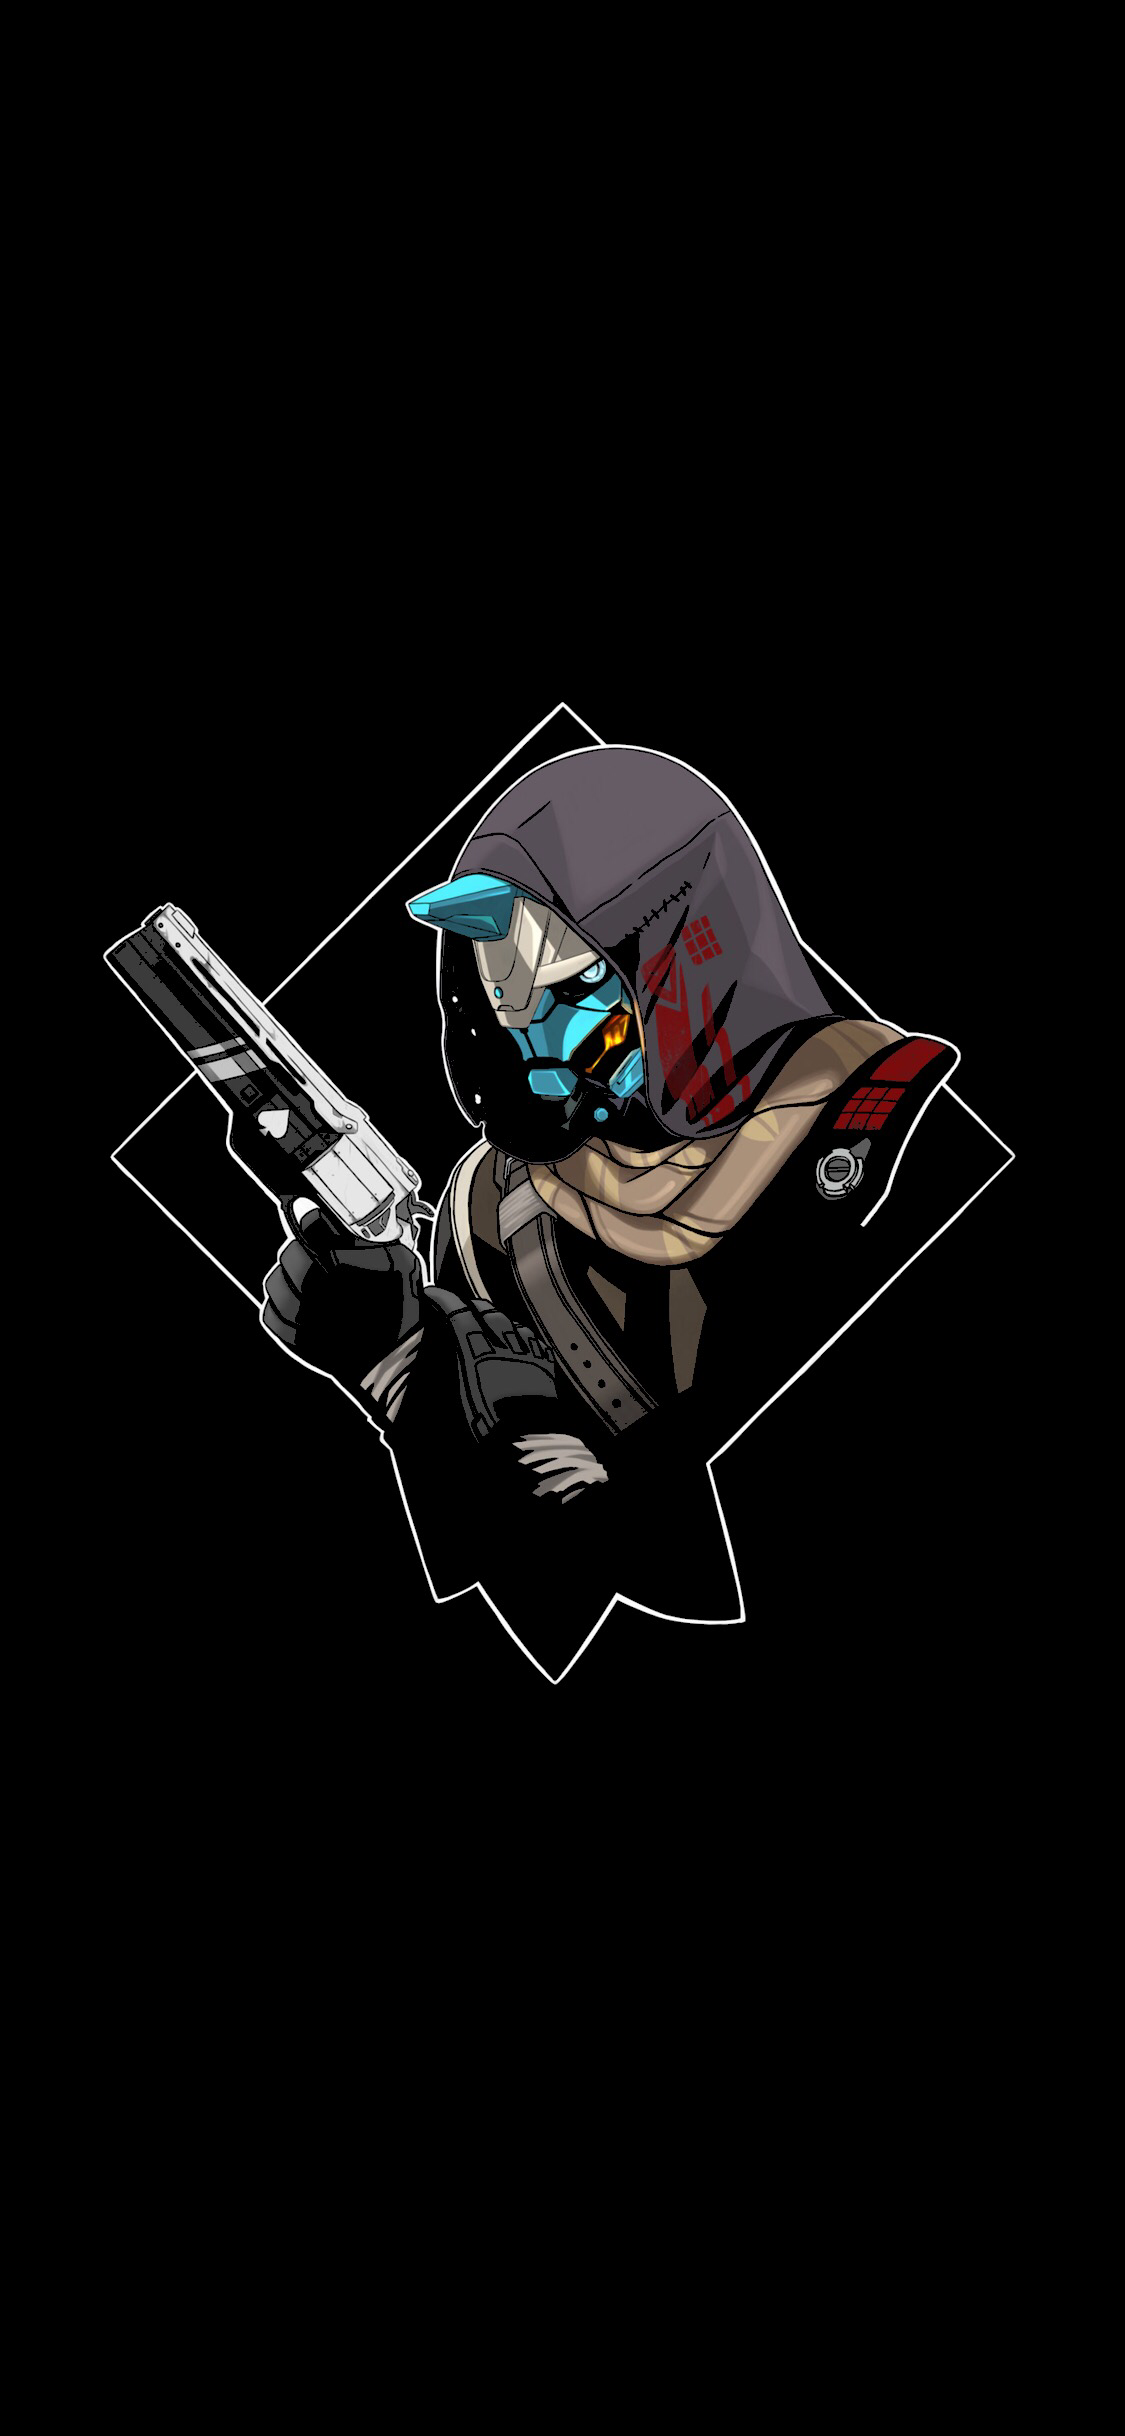 1125x2436 Cayde 6 W Oledify Com Submitted By Egotisticpain To R Amoledbackgrounds 0 Comments Original Destiny Game Destiny Backgrounds Destiny Hunter